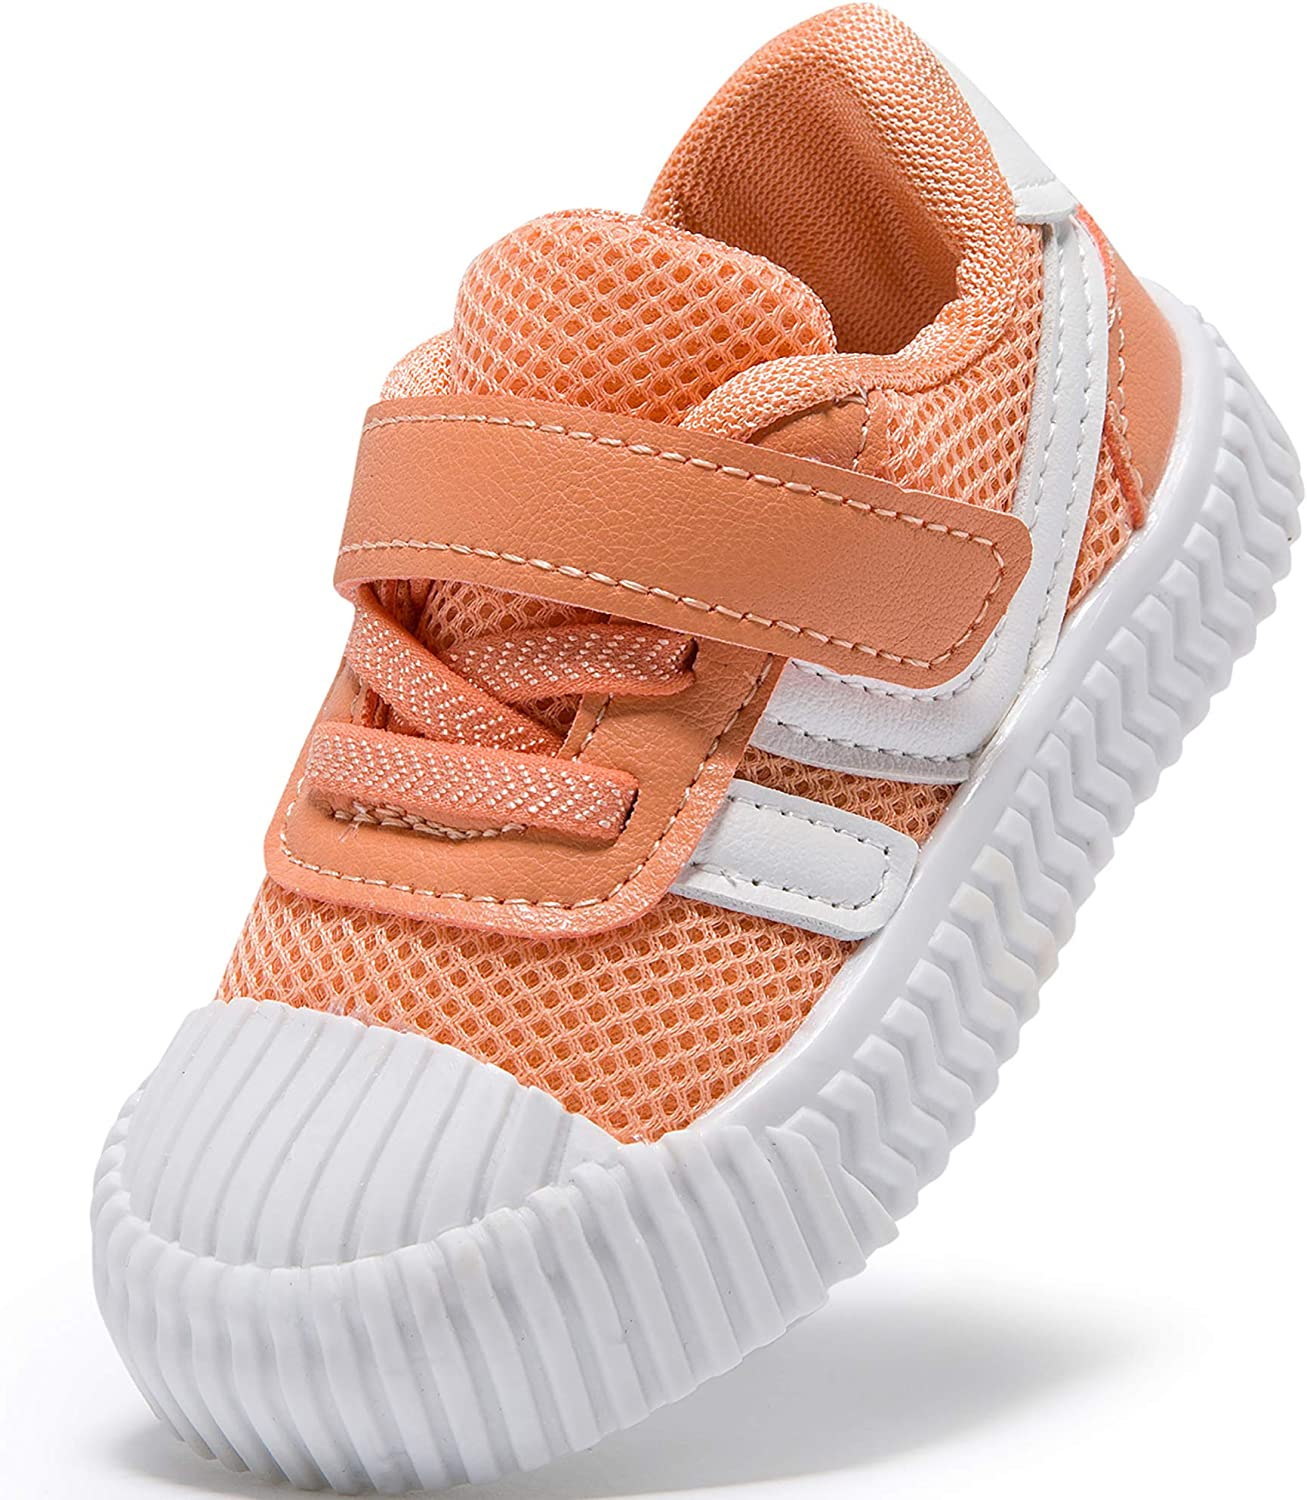 HLMBB Baby Reservation Shoes Sneakers for Infant Bab Girls Popular overseas Boys Toddler Kids